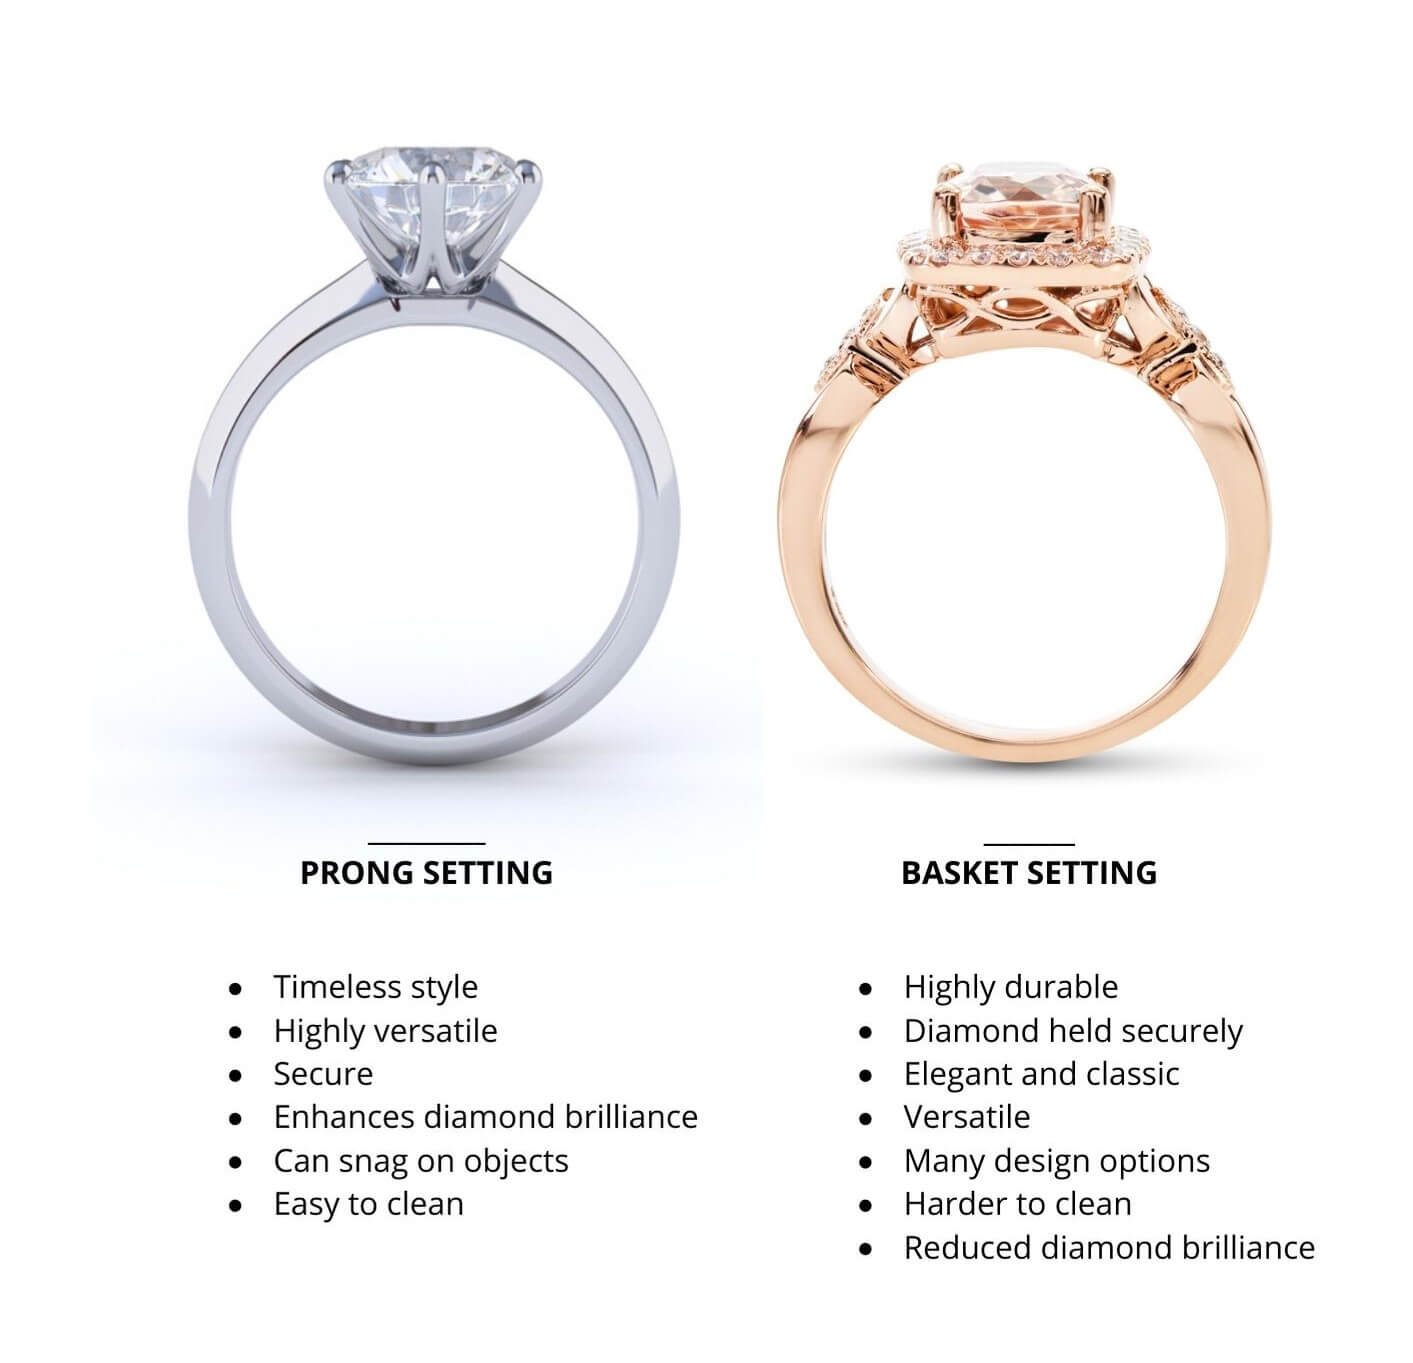 Prong Vs Basket Engagement Ring Settings Wedding Knowhow